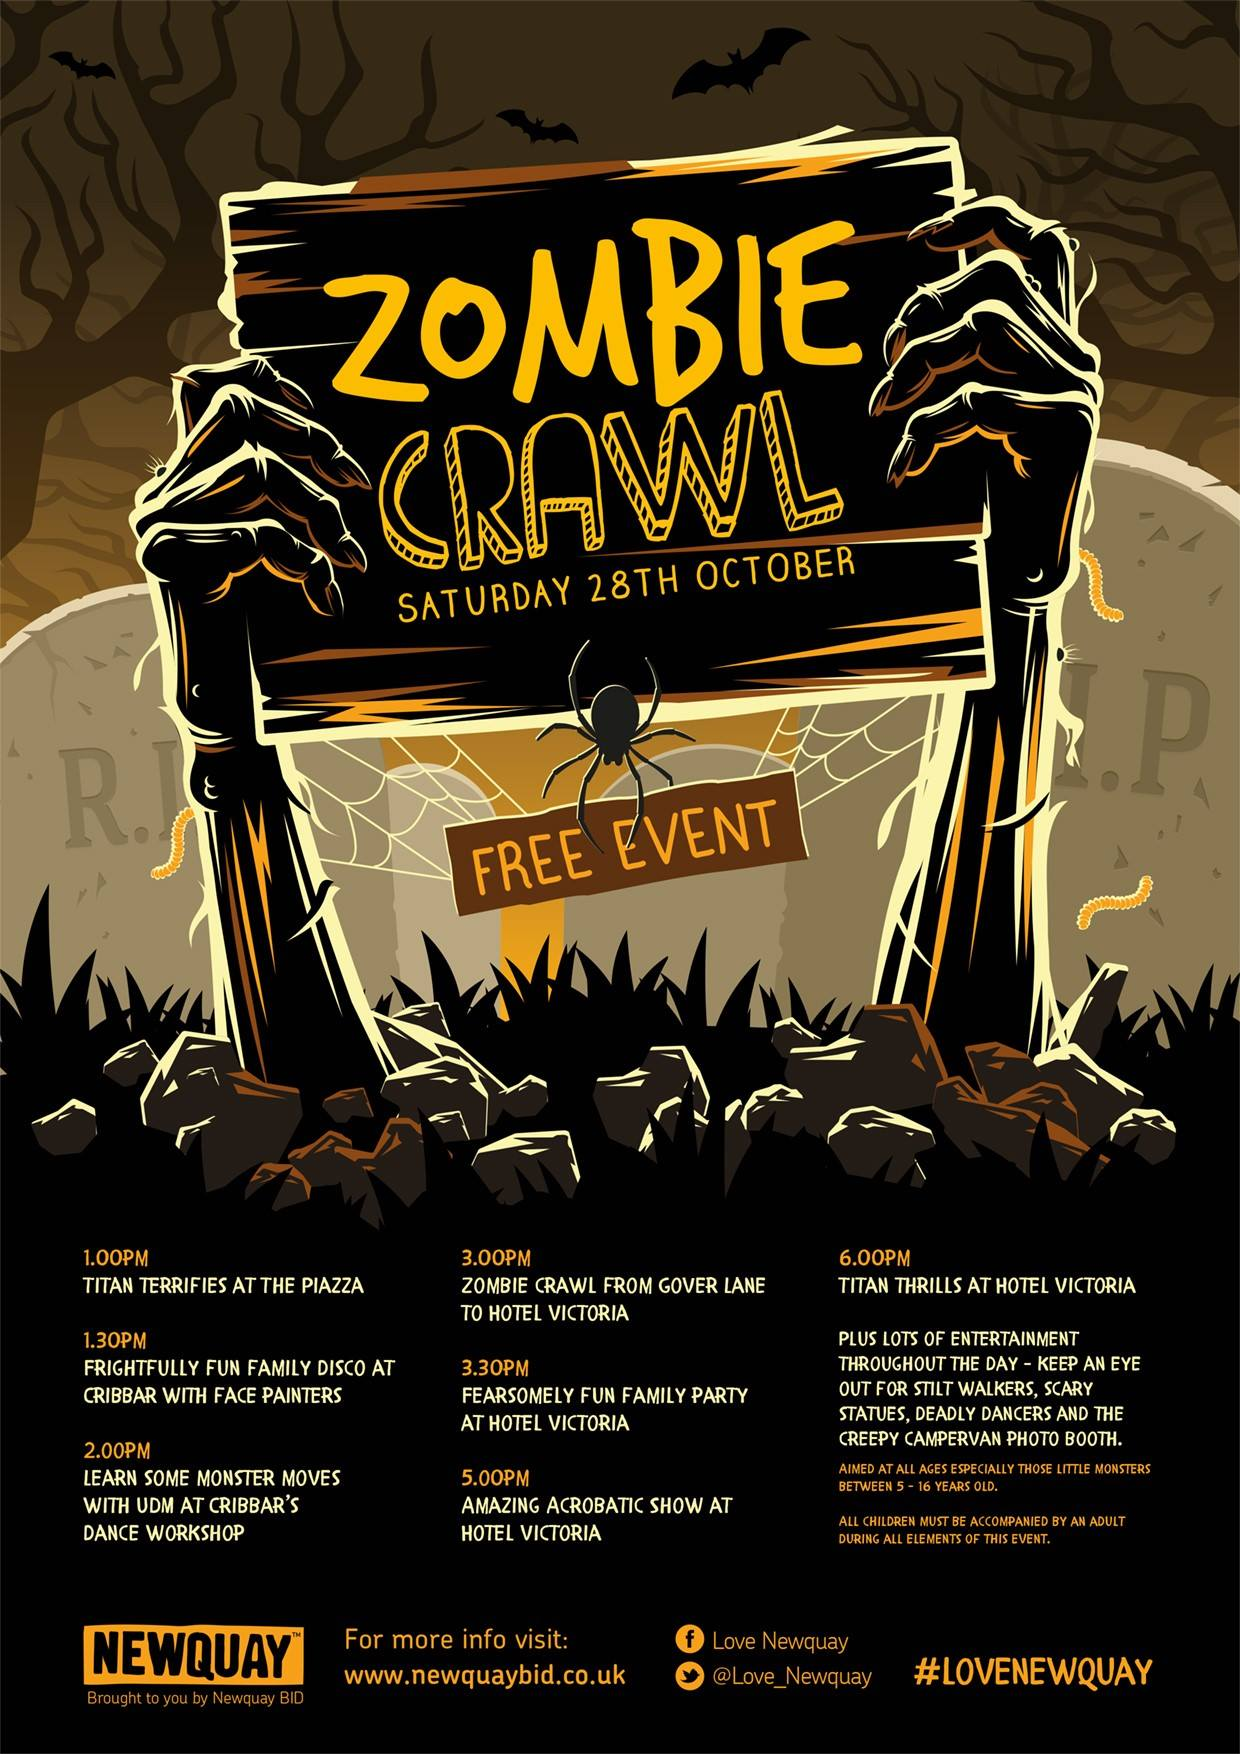 zombie crawl Newquay - 28th October 2017